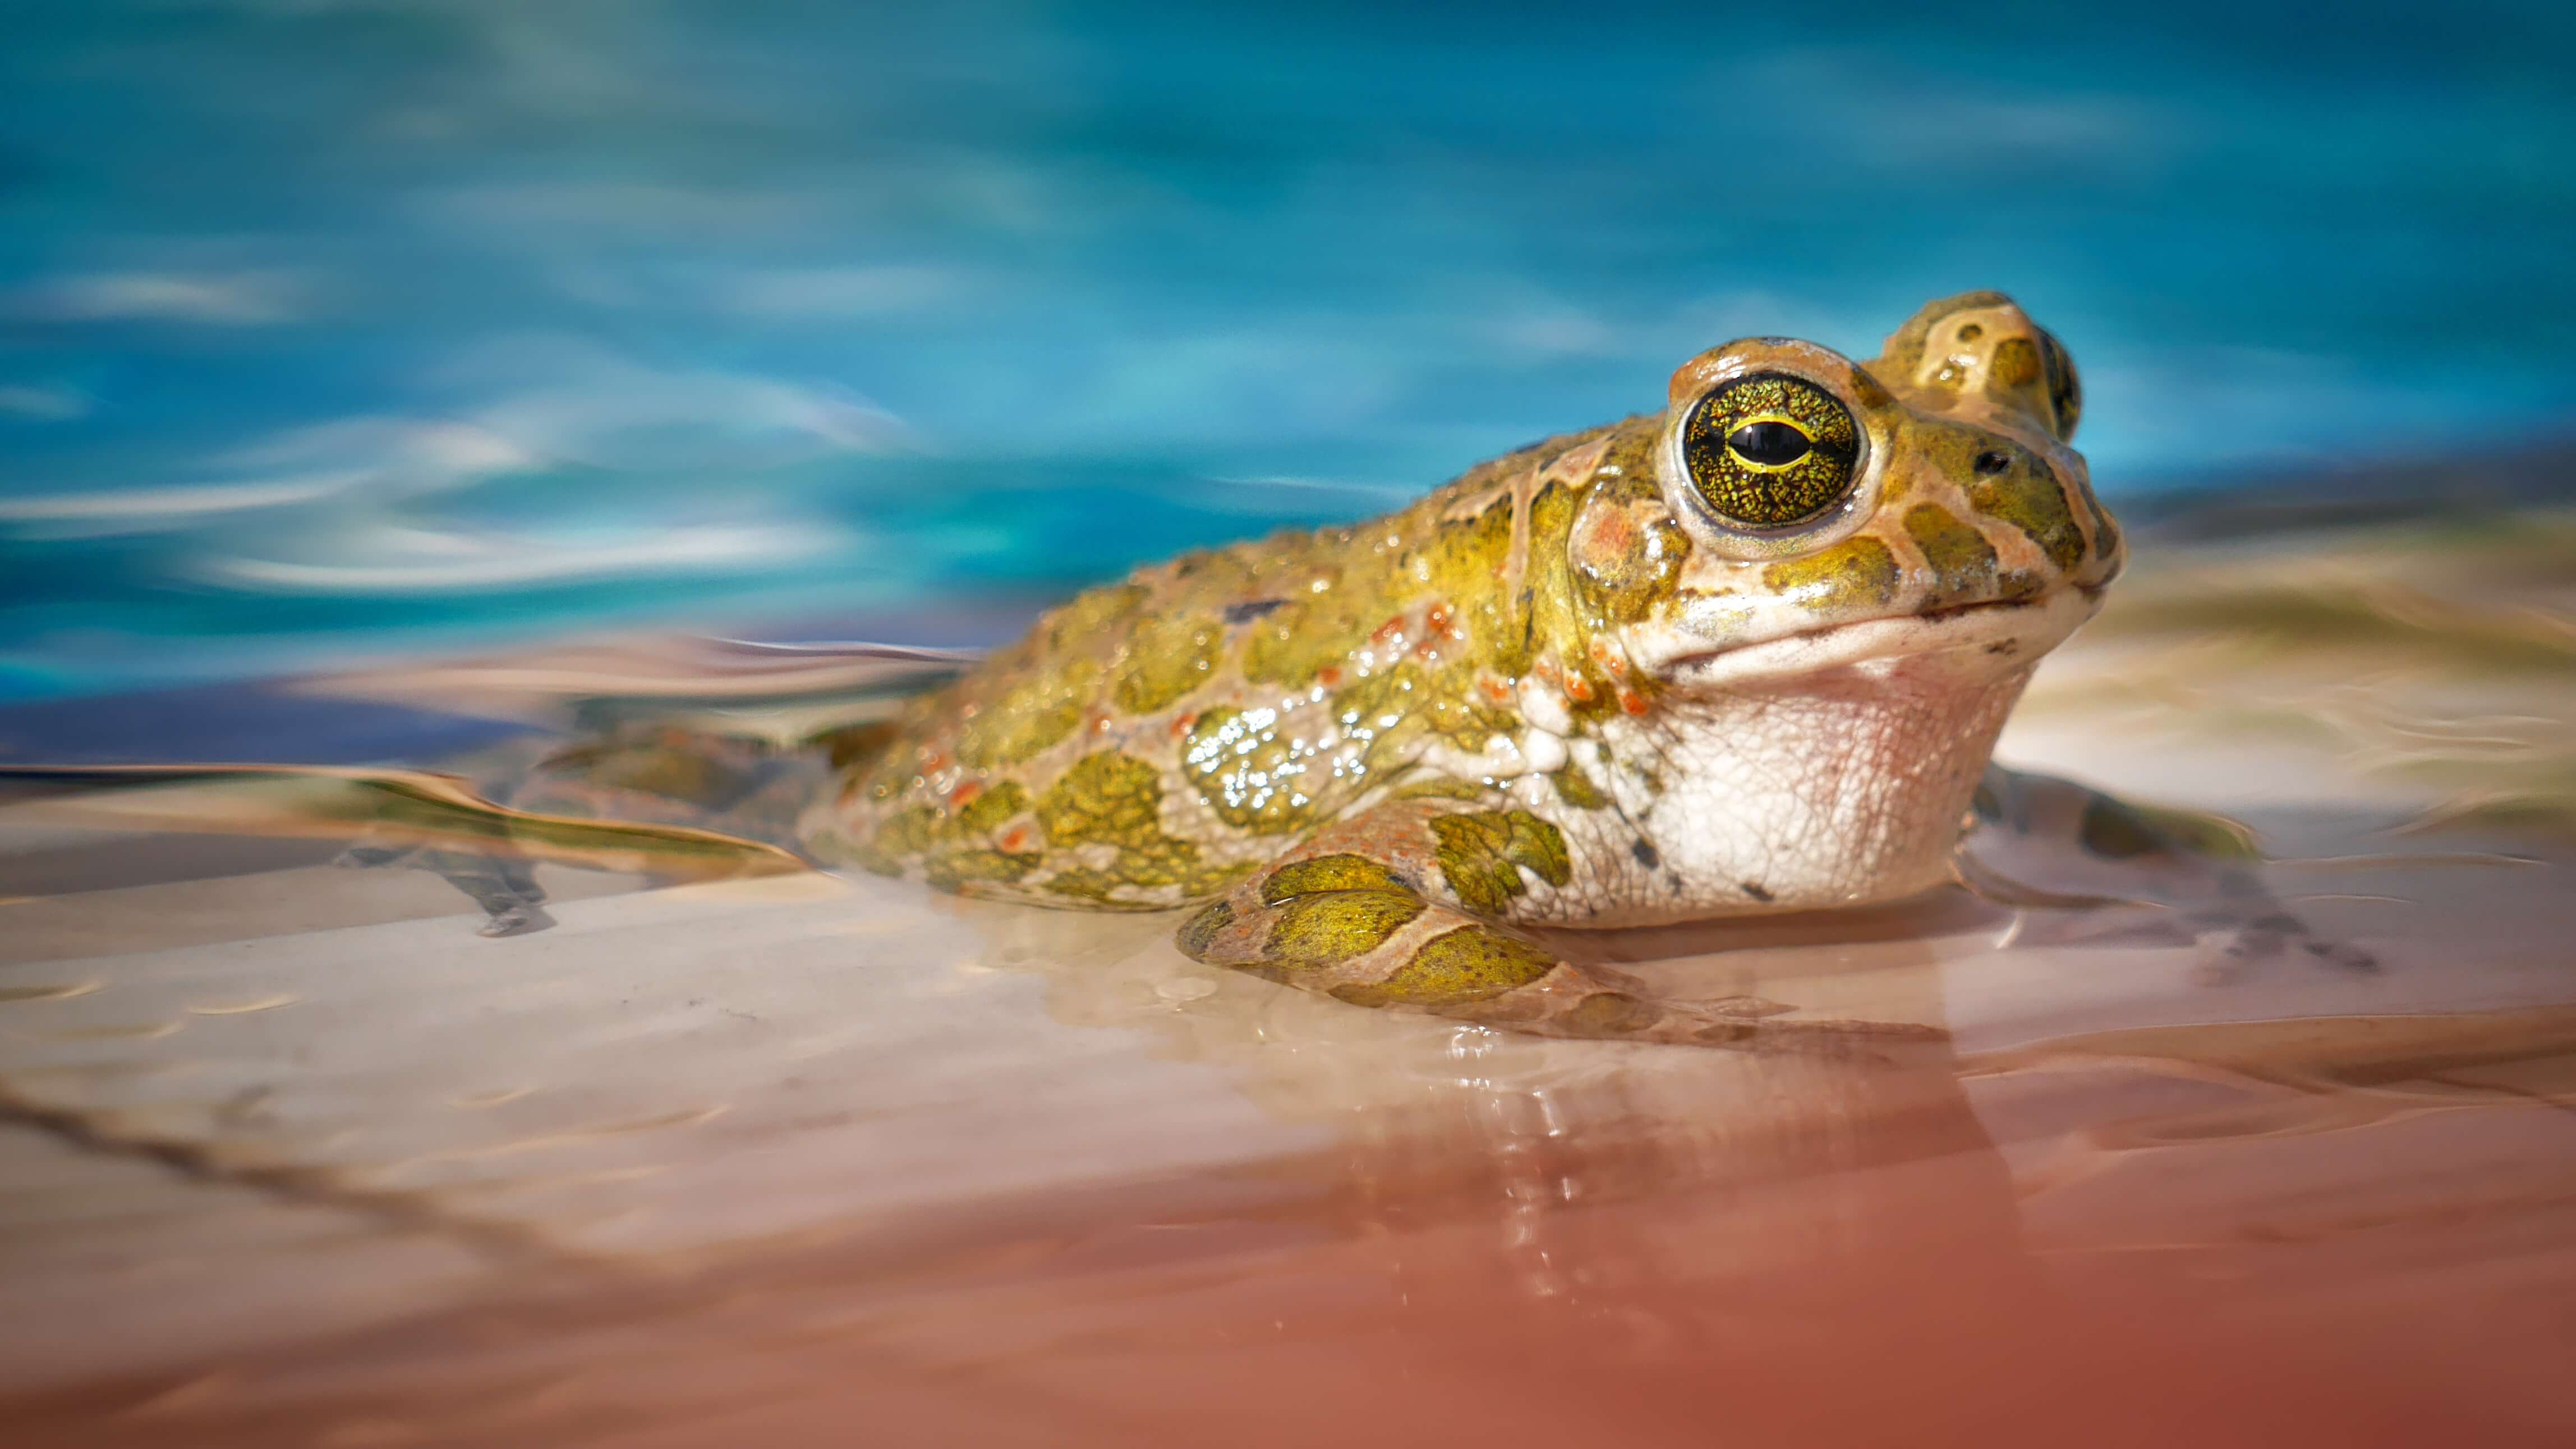 Pool Party Frog Wide